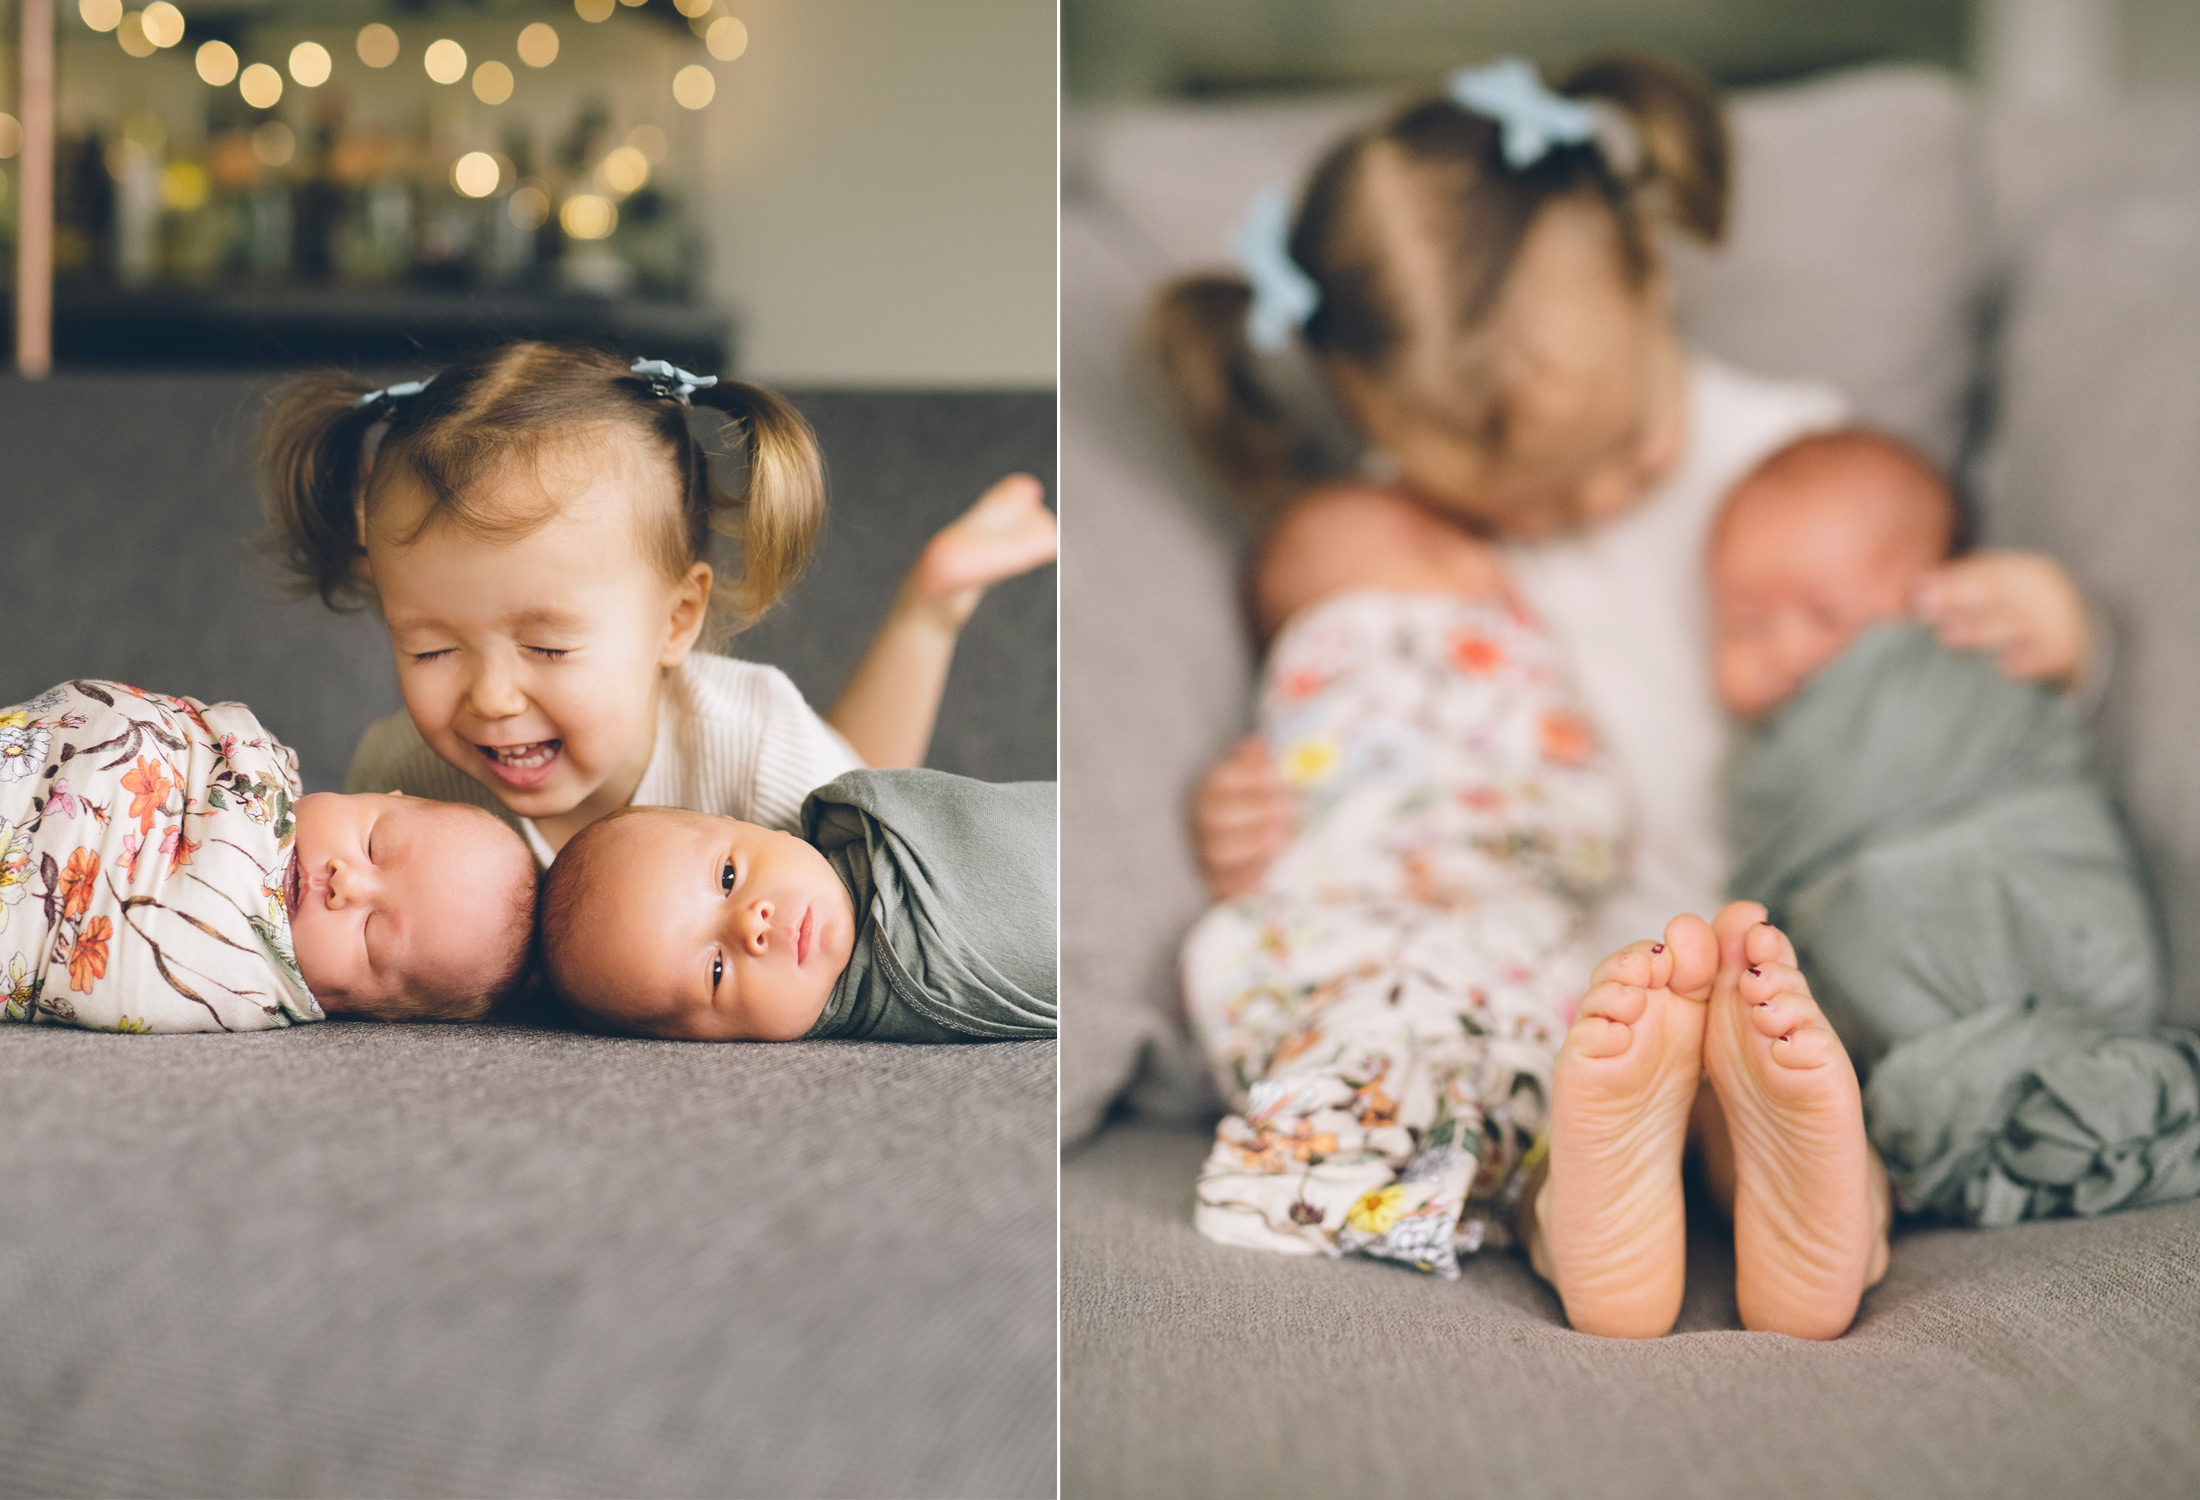 newborn-baby-twins-with-sister.jpg